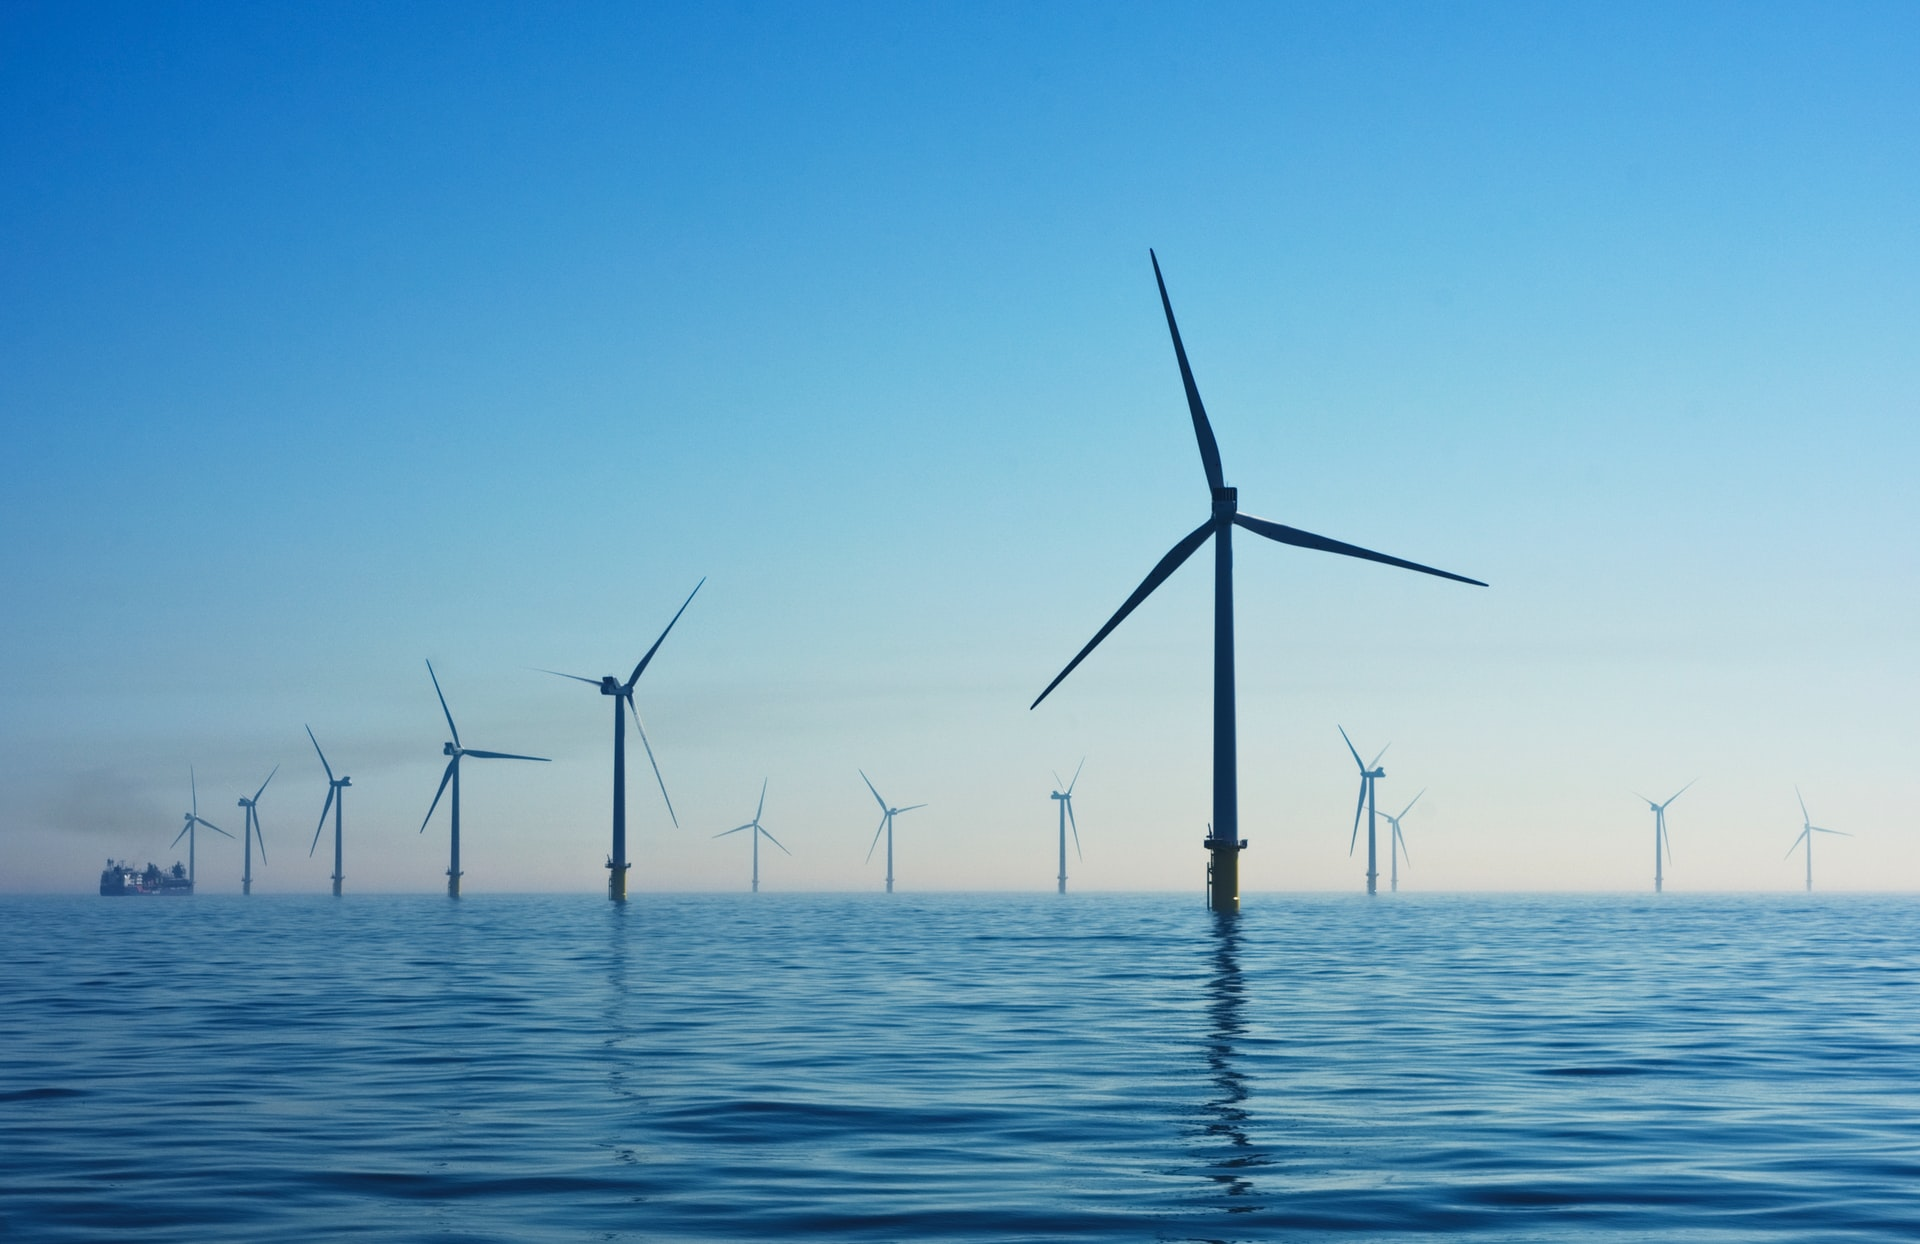 <p>Ocean-based renewable energy can help significantly expand renewable energy capacity, especially for coastal and island countries. Photo by Nicholas Doherty/Unsplash</p>